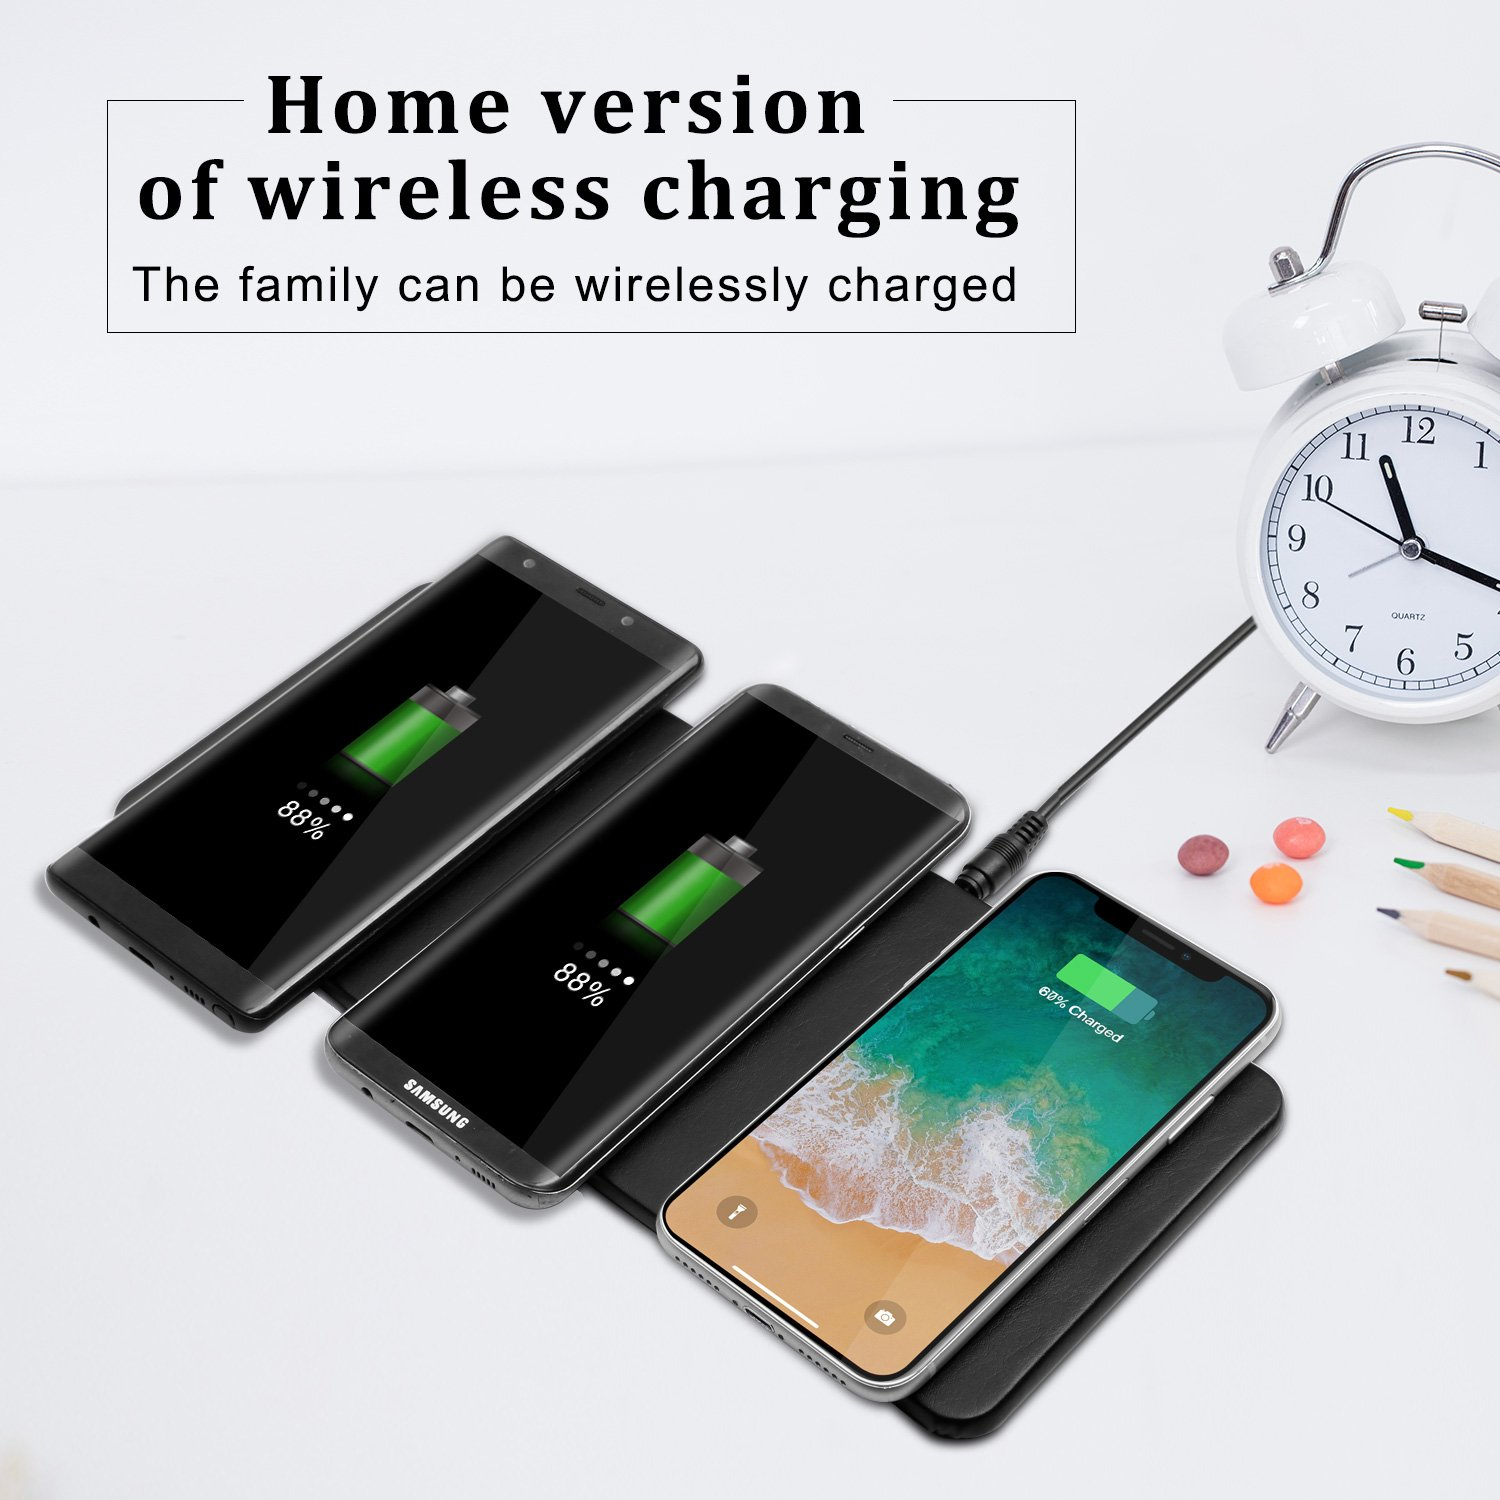 Qi Triple Wireless Charger Station,JE 3 Devices Multi Wireless Charger Pad,Desktop Charging Station for iPhone X, iPhone 8/8Plus, Samsung Galaxy S8+ S7/S7 Edge Note 8/5, Nexus 5/6/7& all QI-Enabled … by JE (Image #8)